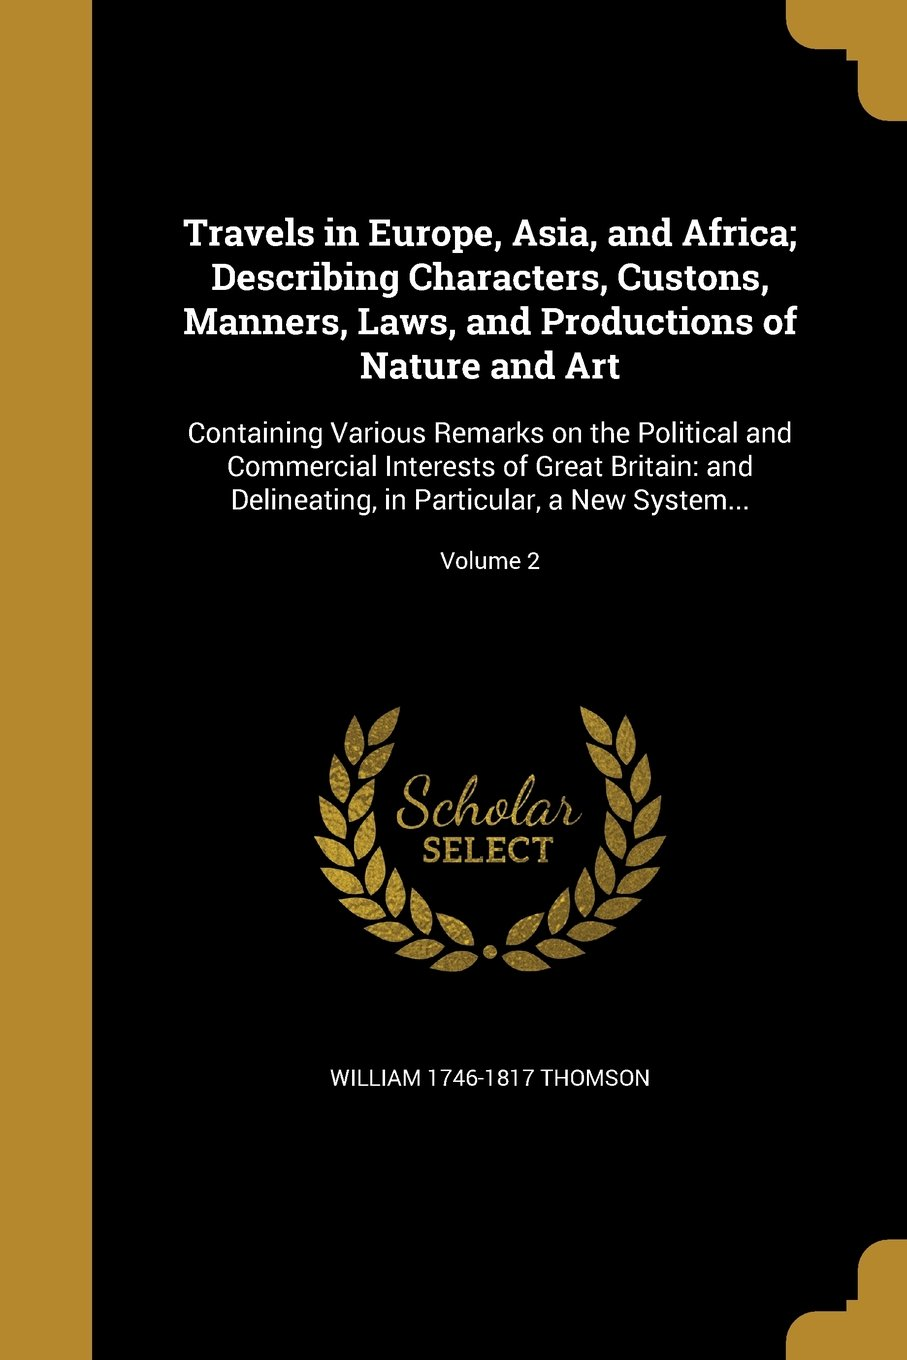 Download Travels in Europe, Asia, and Africa; Describing Characters, Custons, Manners, Laws, and Productions of Nature and Art: Containing Various Remarks on ... in Particular, a New System...; Volume 2 pdf epub